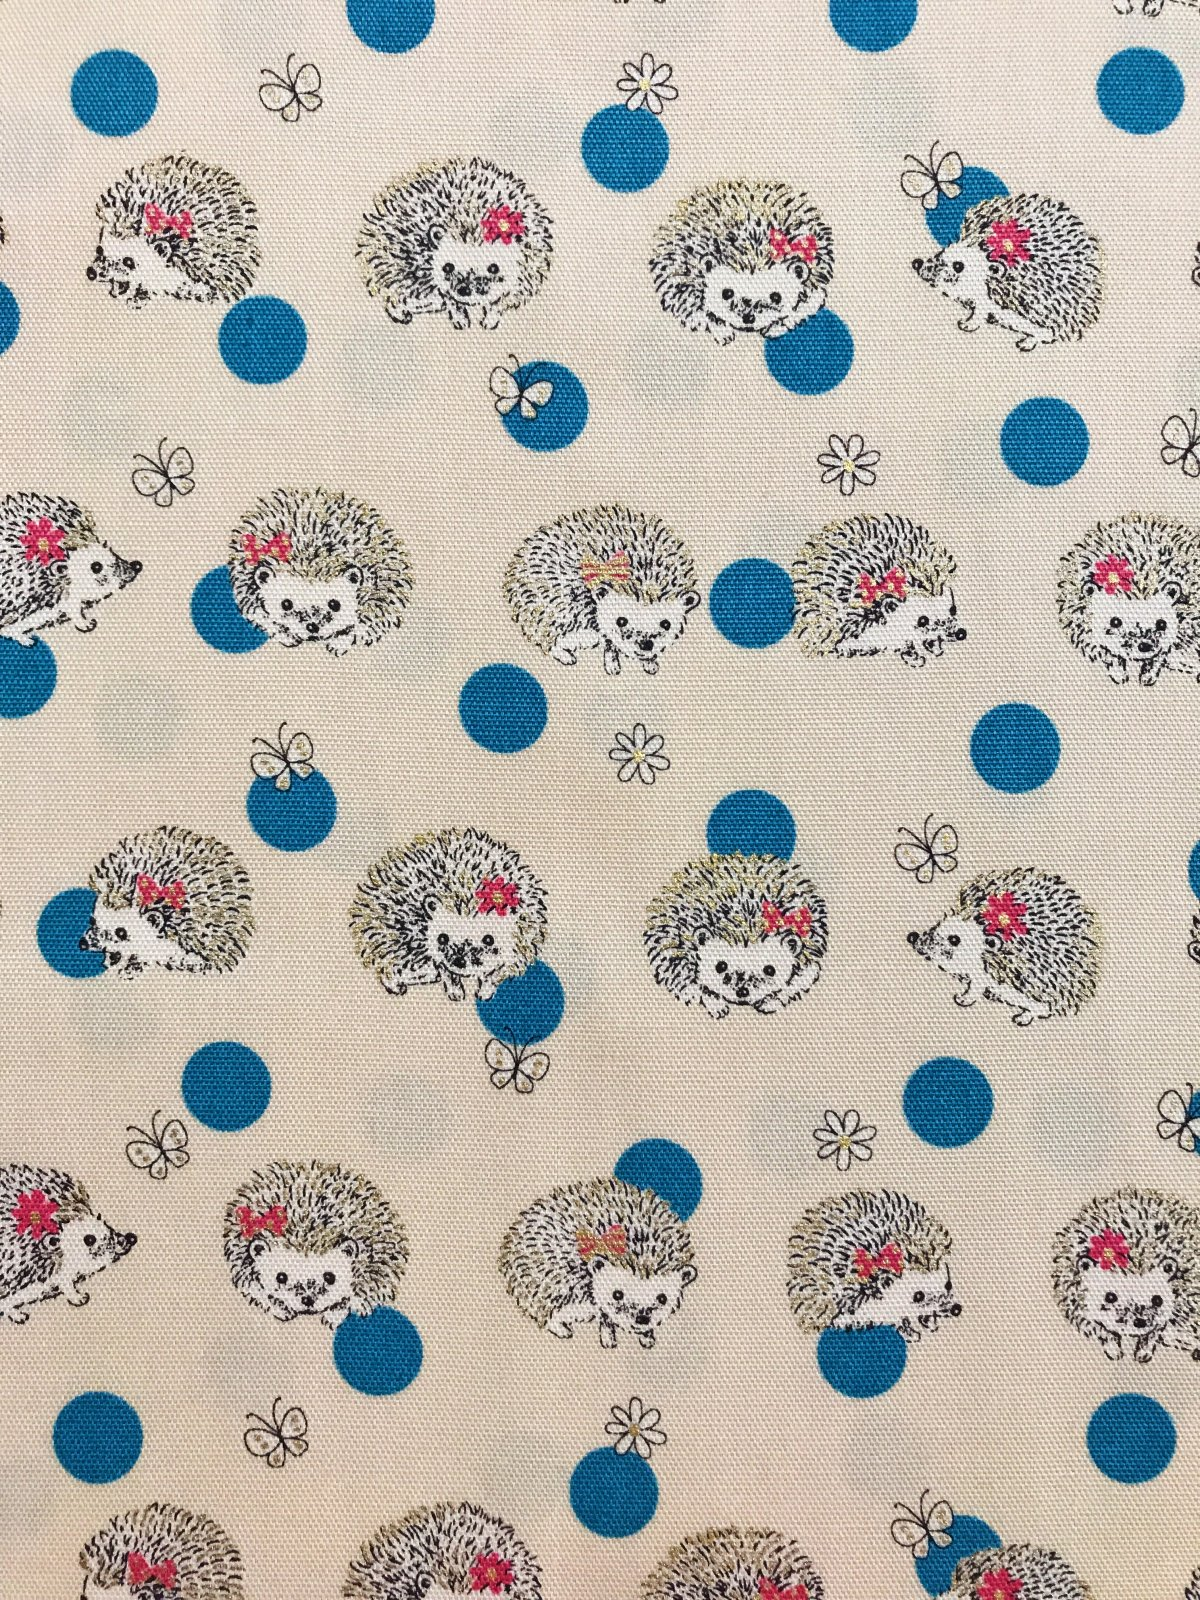 Hedgehogs in Natural Aqua Dots (Light Canvas Fabric) for Kokka #LO-31050-1A